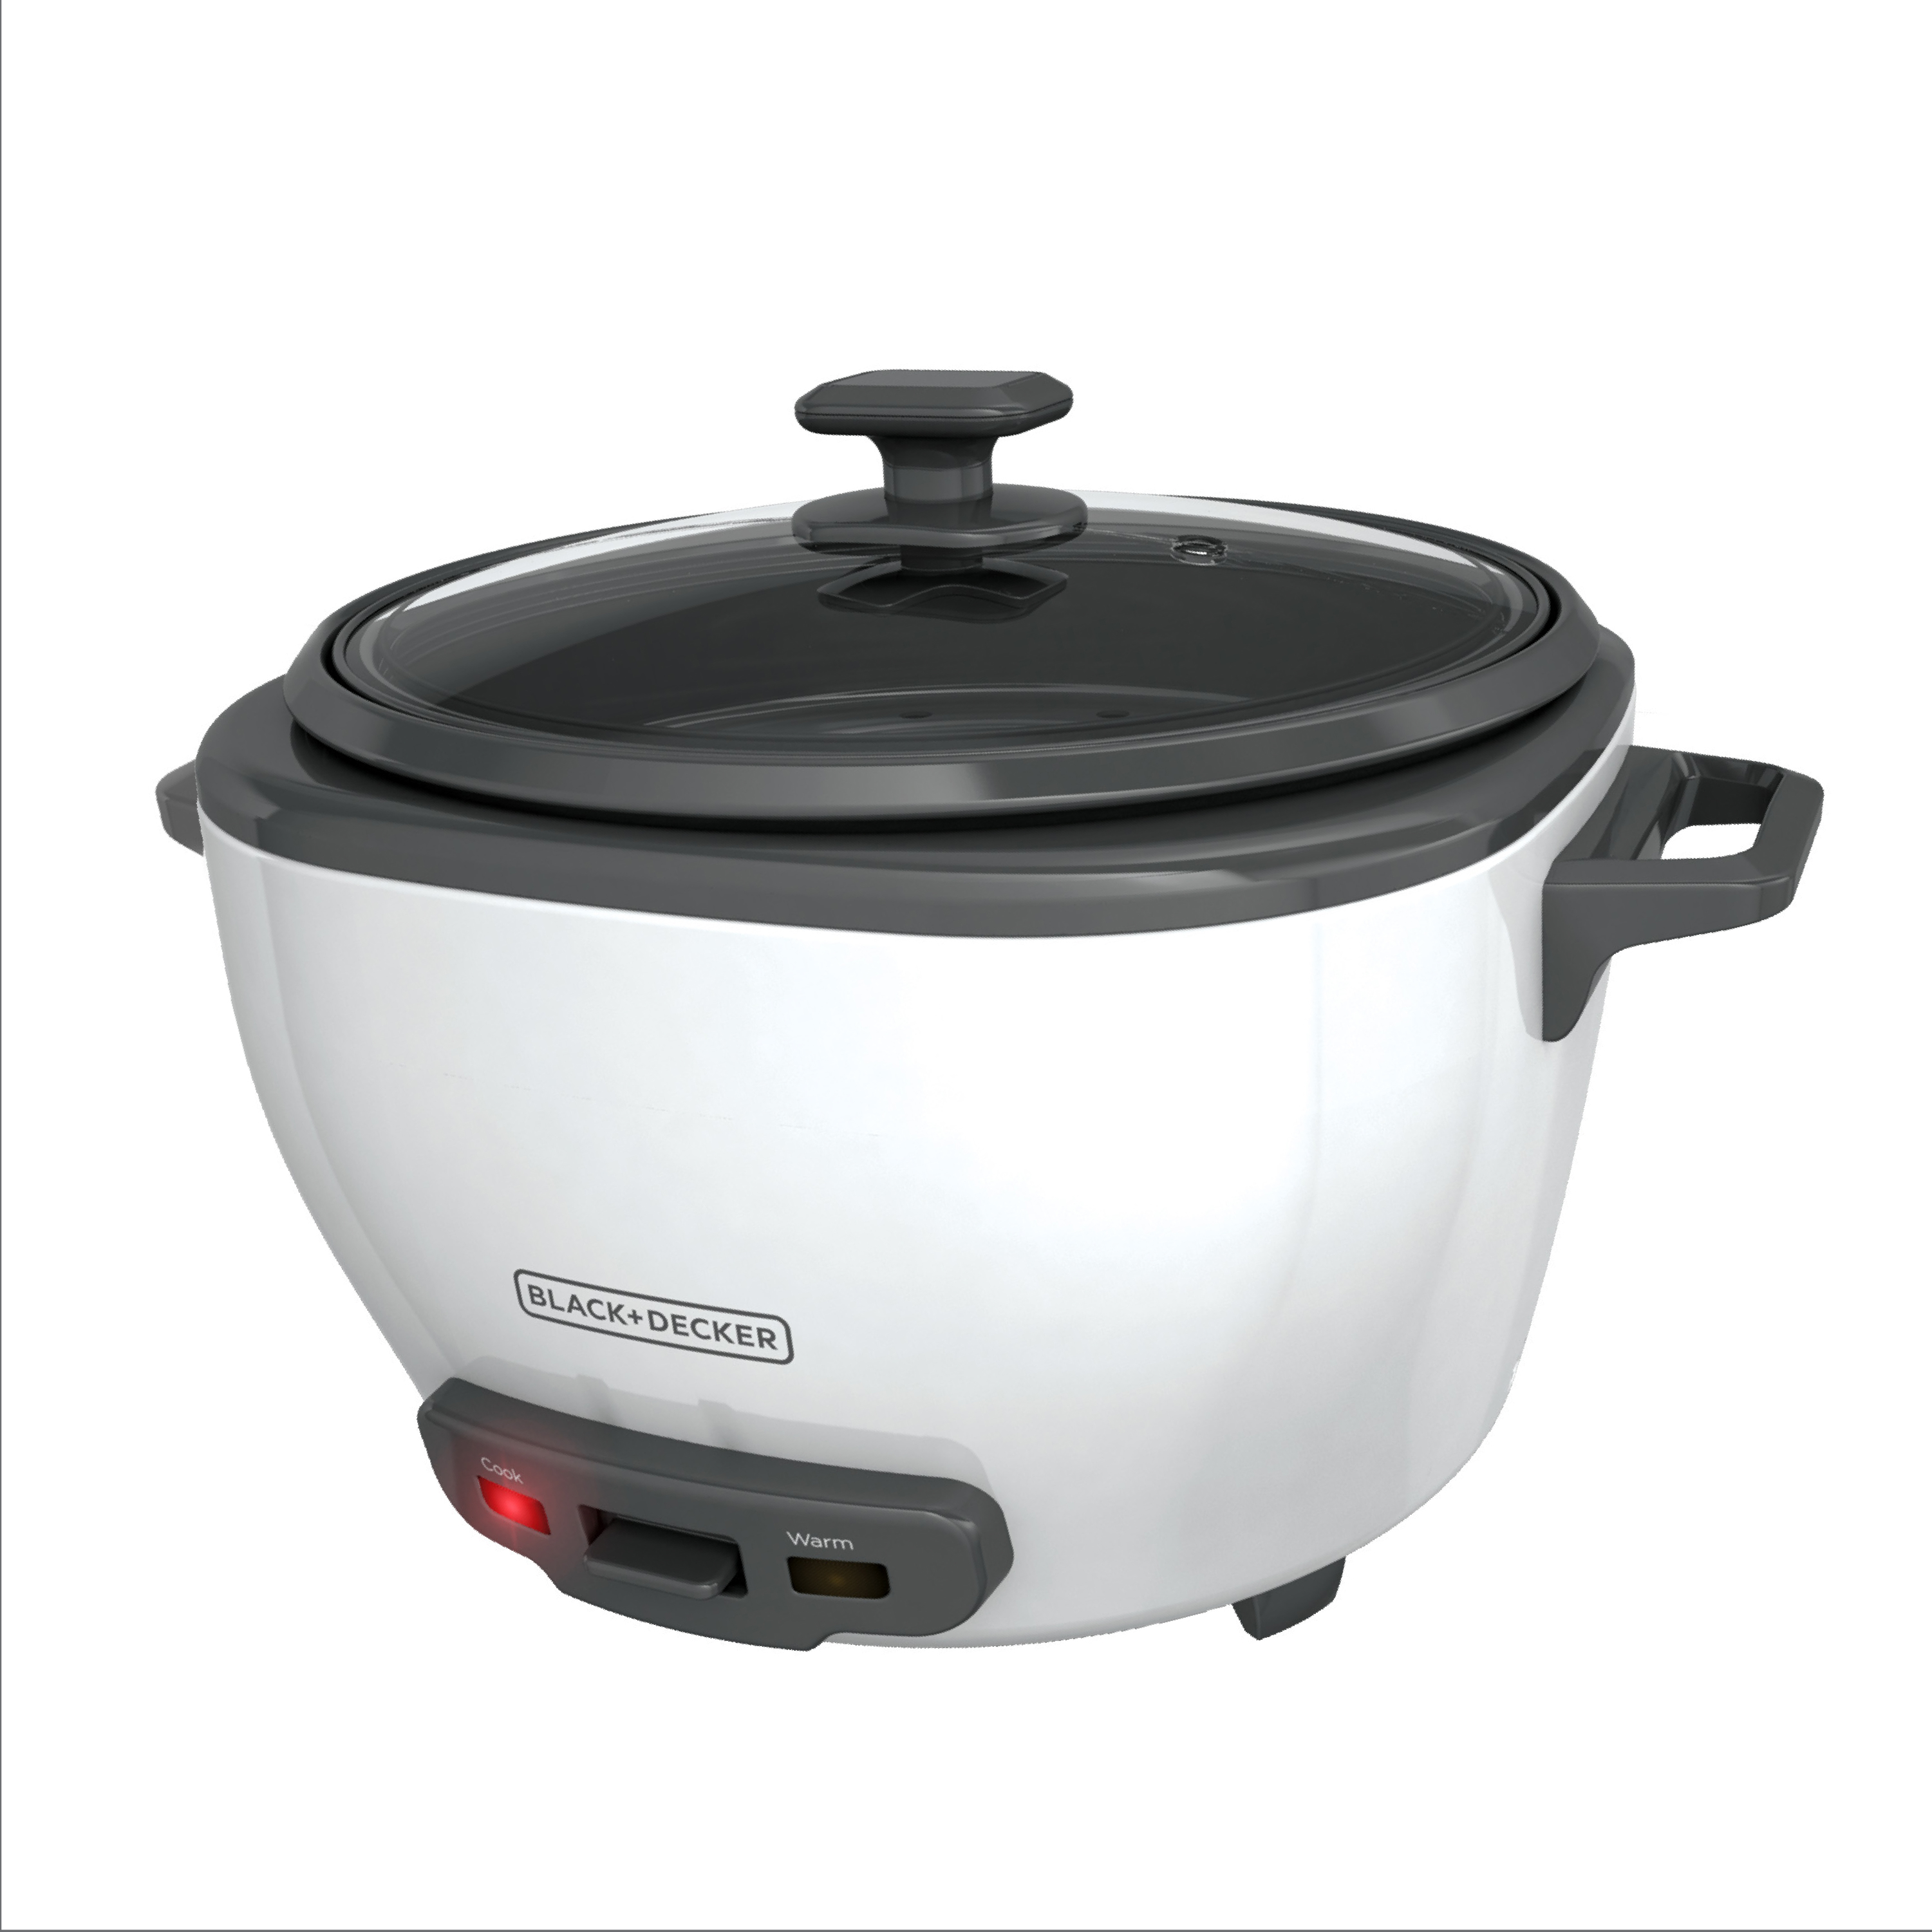 BLACK+DECKER 28-Cup Cooked/14-Cup Uncooked Rice Cooker and Food Steamer, White, RC5280